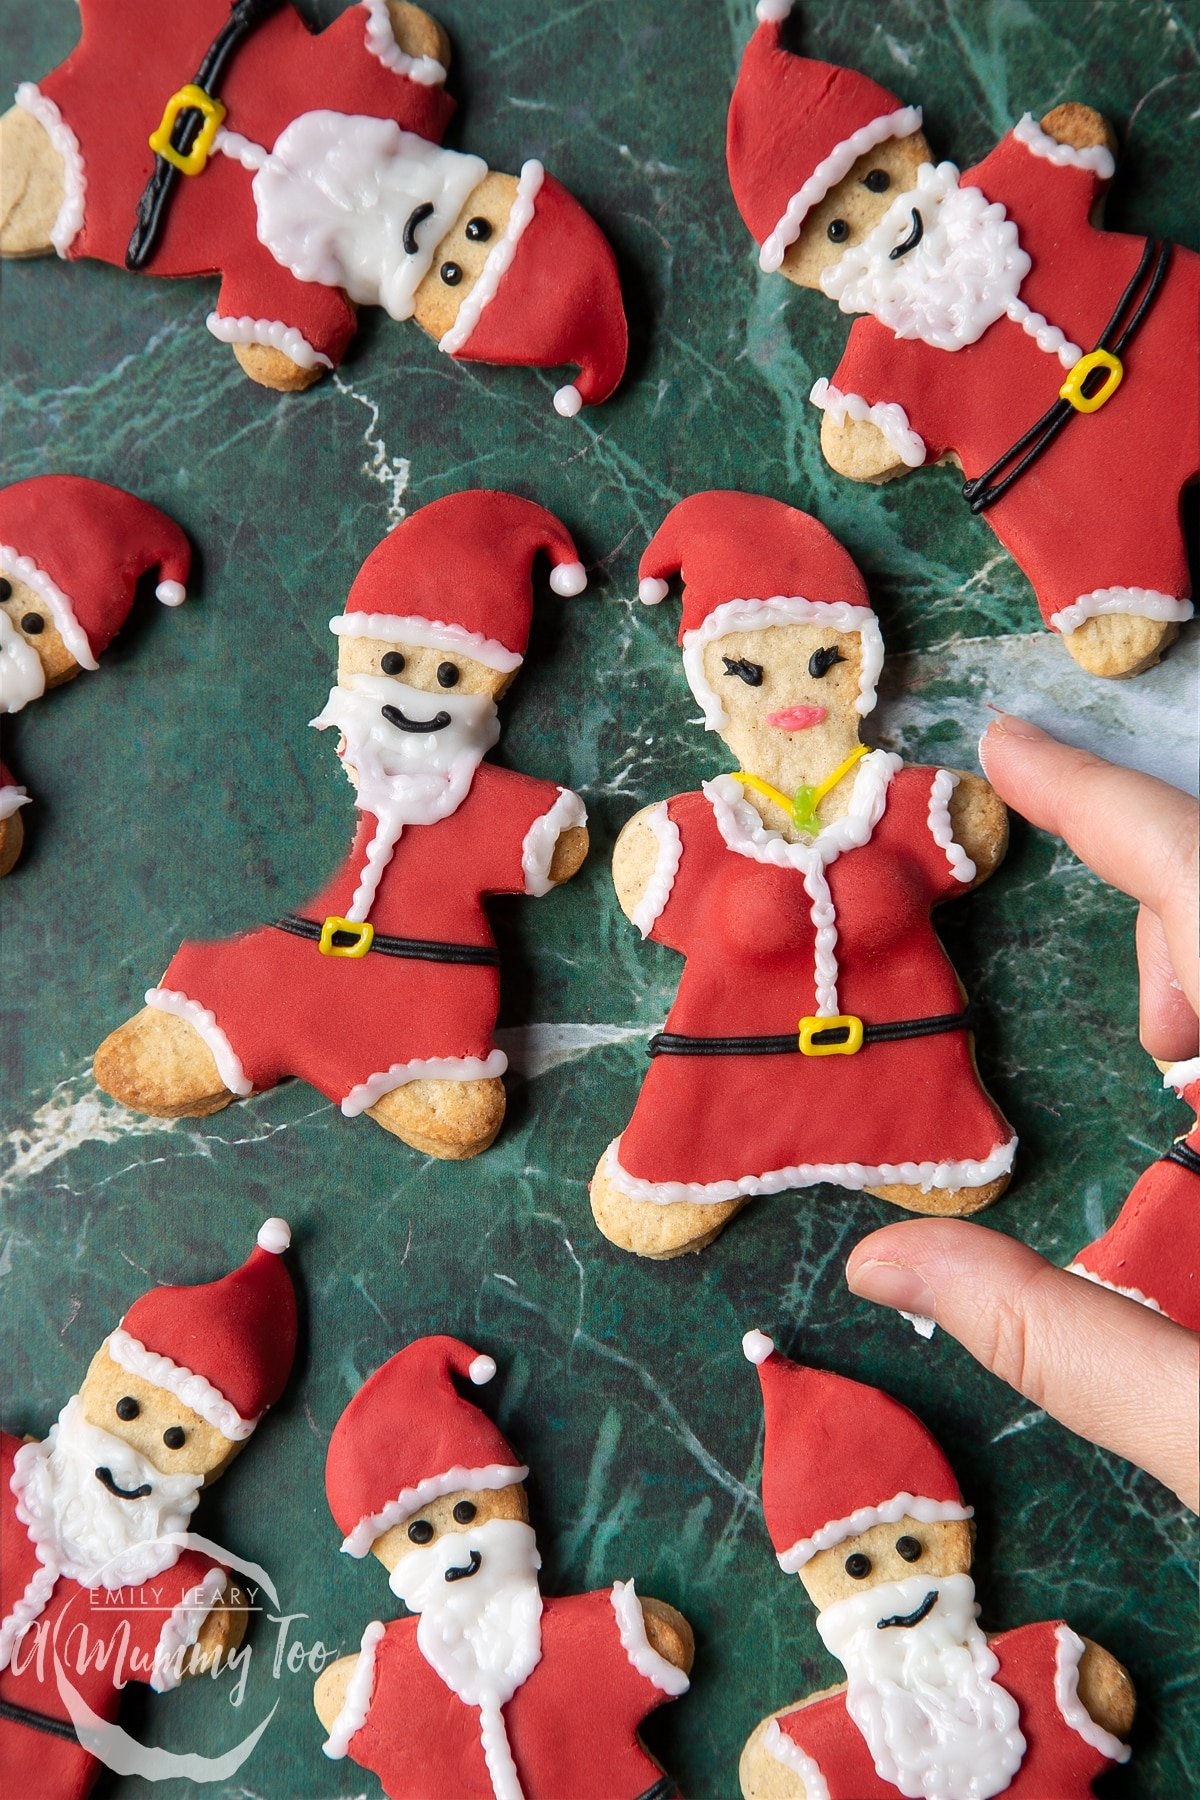 Lots of Father Christmas cookies on a green marble surface. One cookie has a bite take out of it. A hand reaches to take a Mother Christmas cookie.